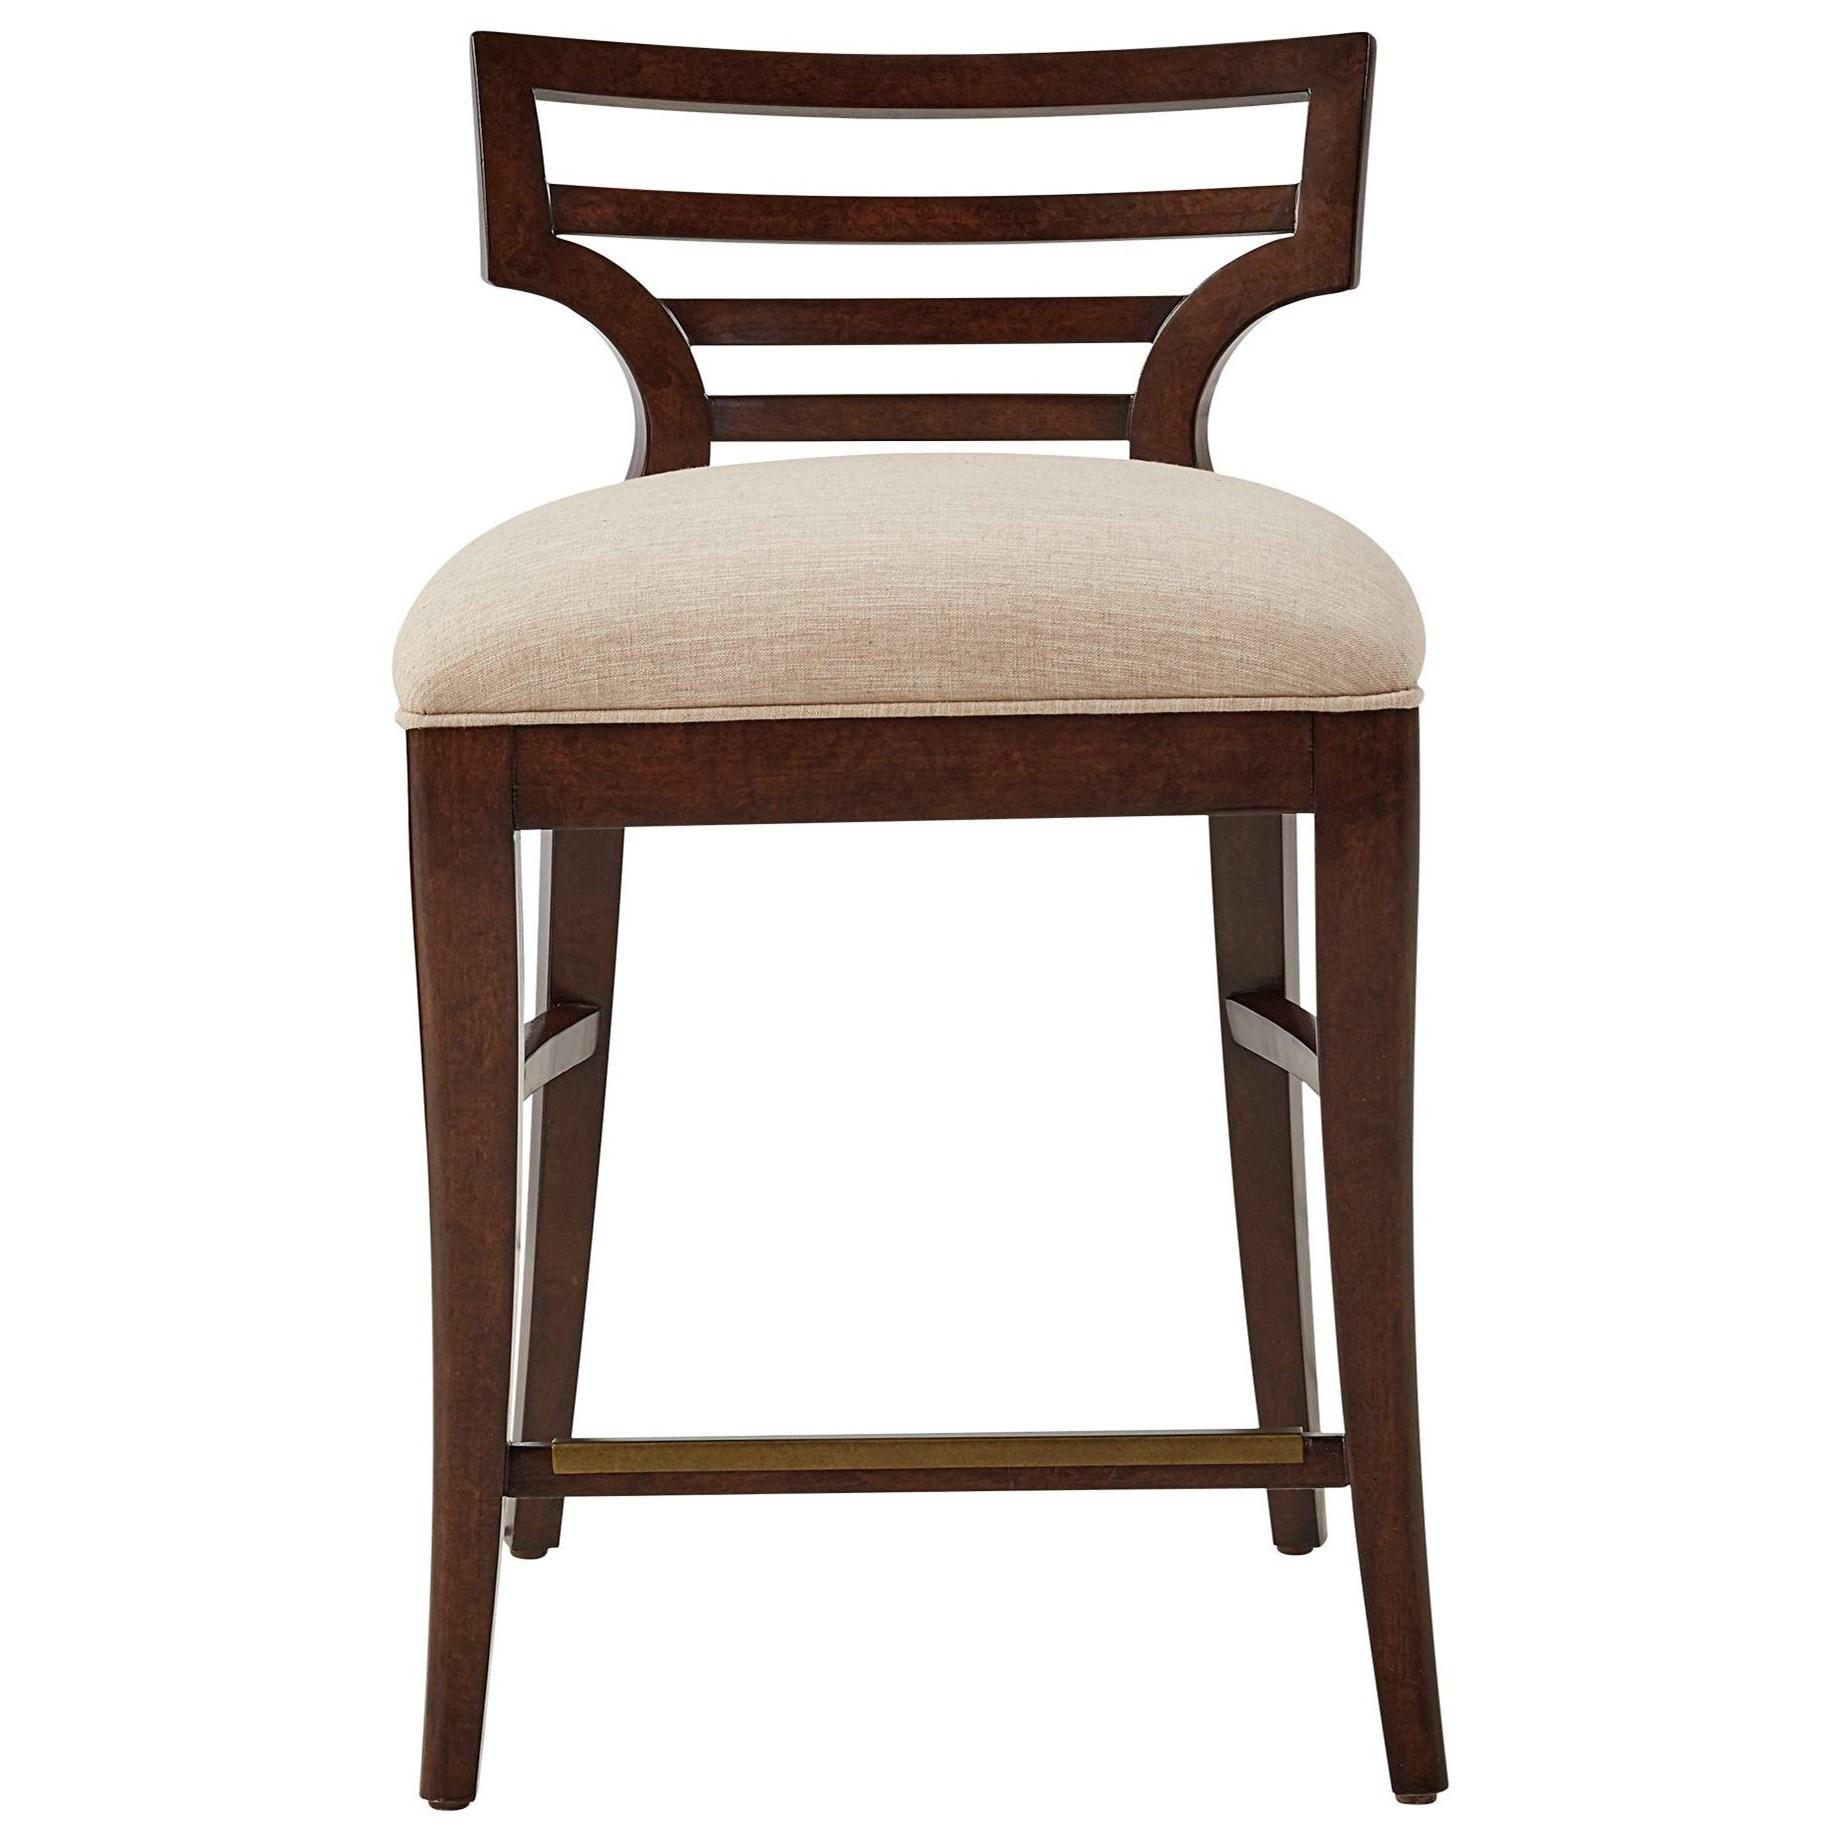 Stanley Furniture Virage Counter Stool With Upholstered